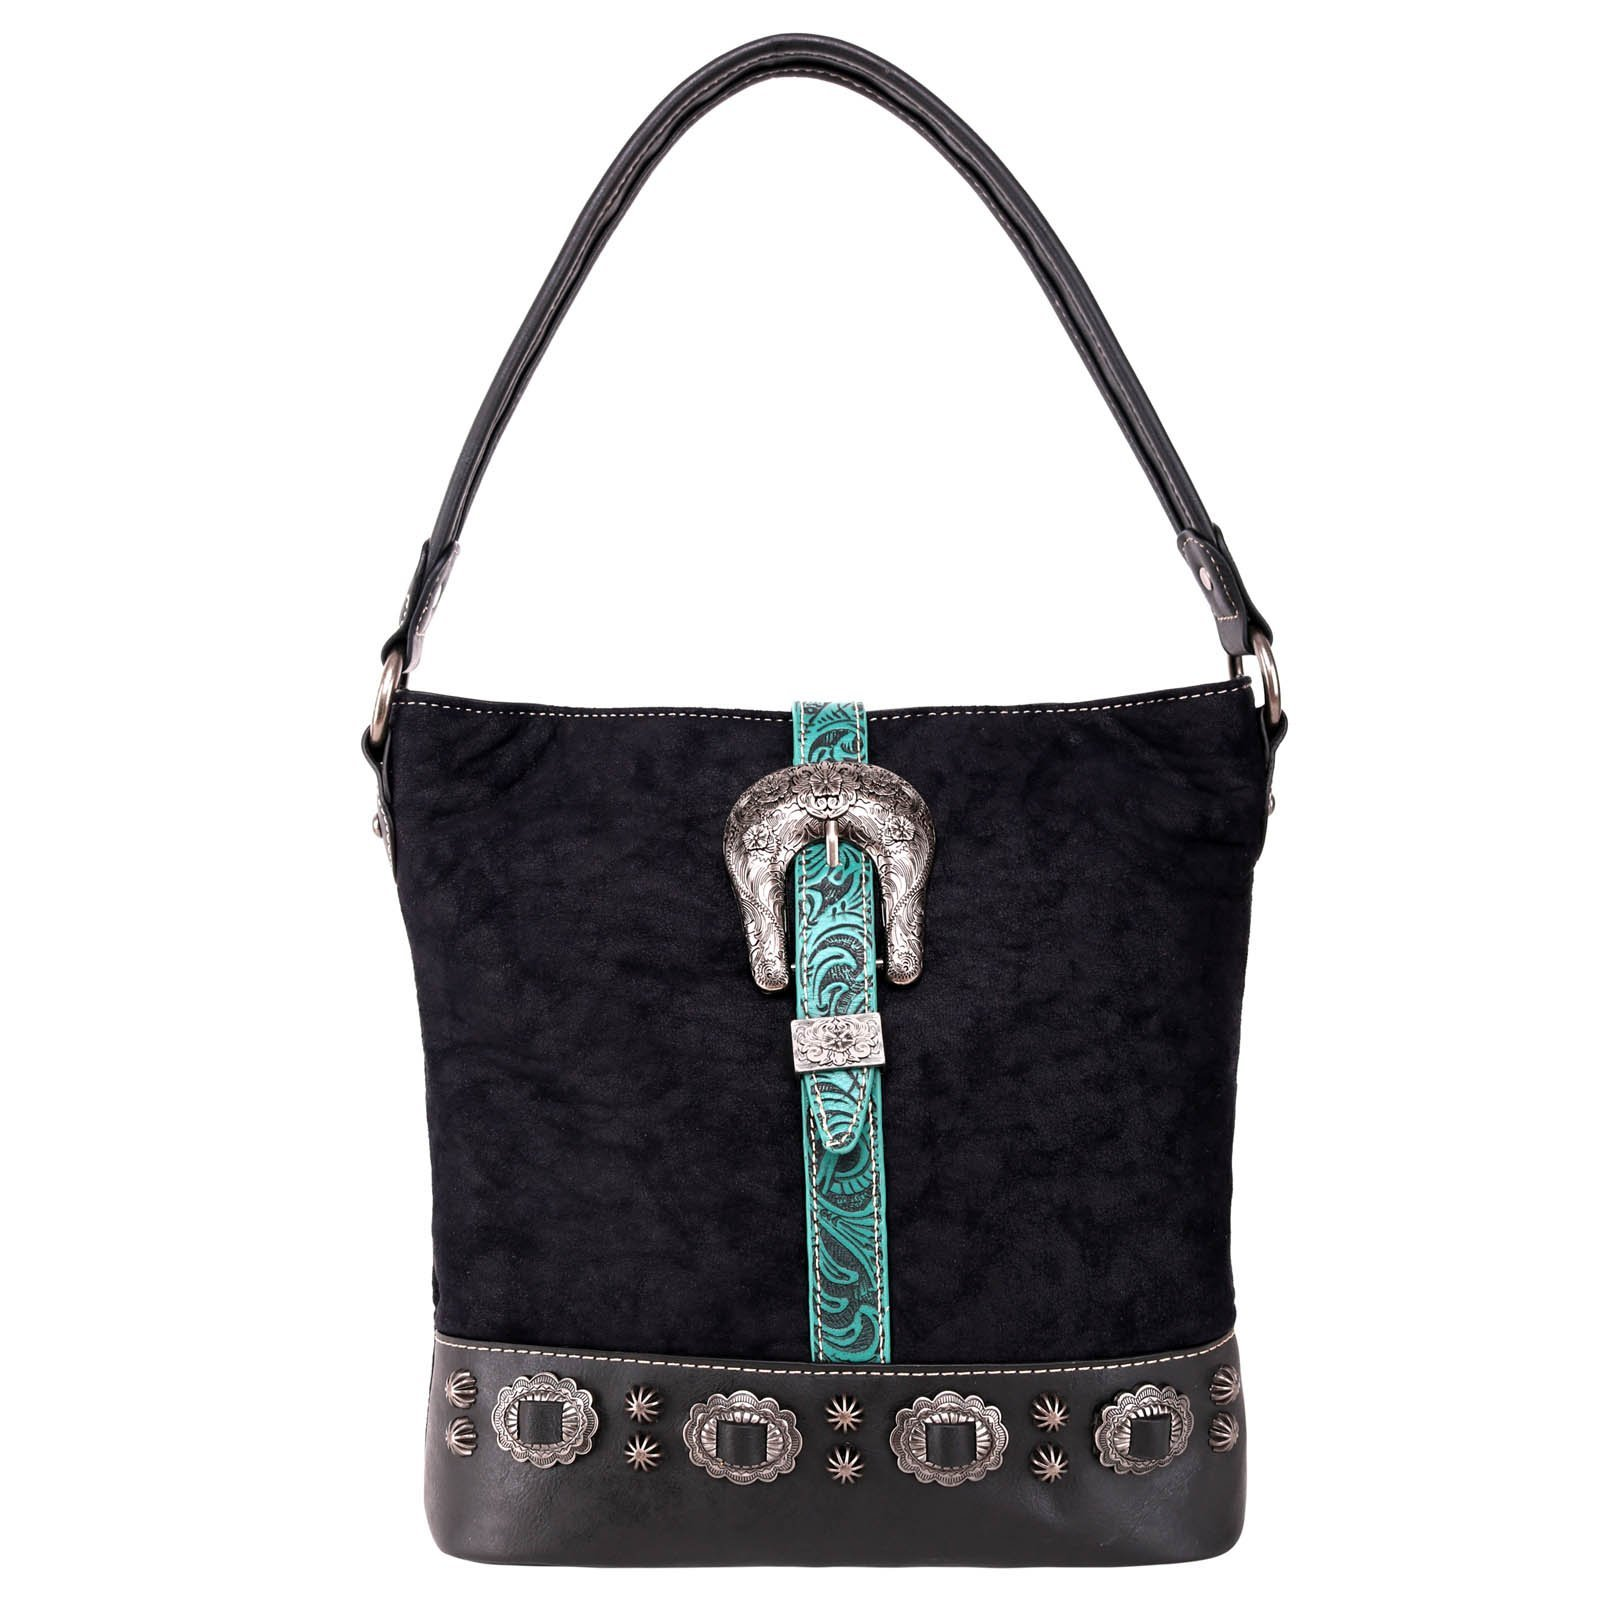 Montana West Buckle Collection Concealed Carry Bag Black Turquoise